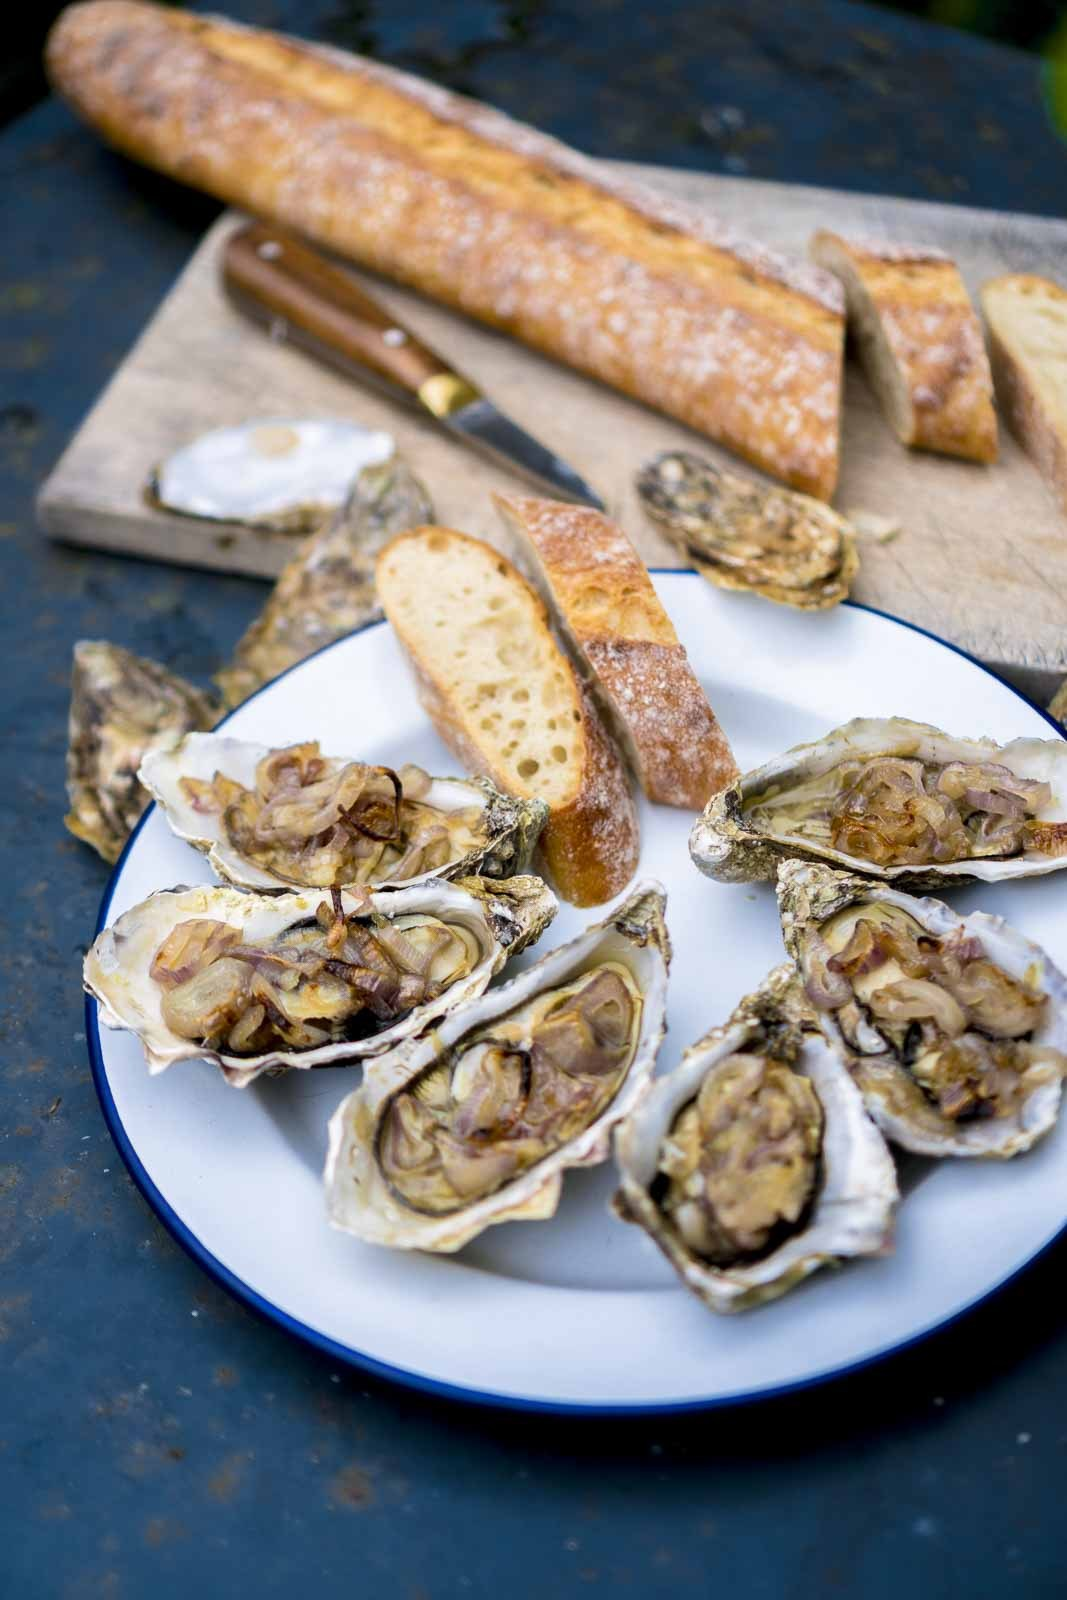 Oysters with shallots according to a recipe from @julieandrieu.officiel from her marvelous cookbook Le tour de France gourmand - our holiday cookbook 🇫🇷🍴😋